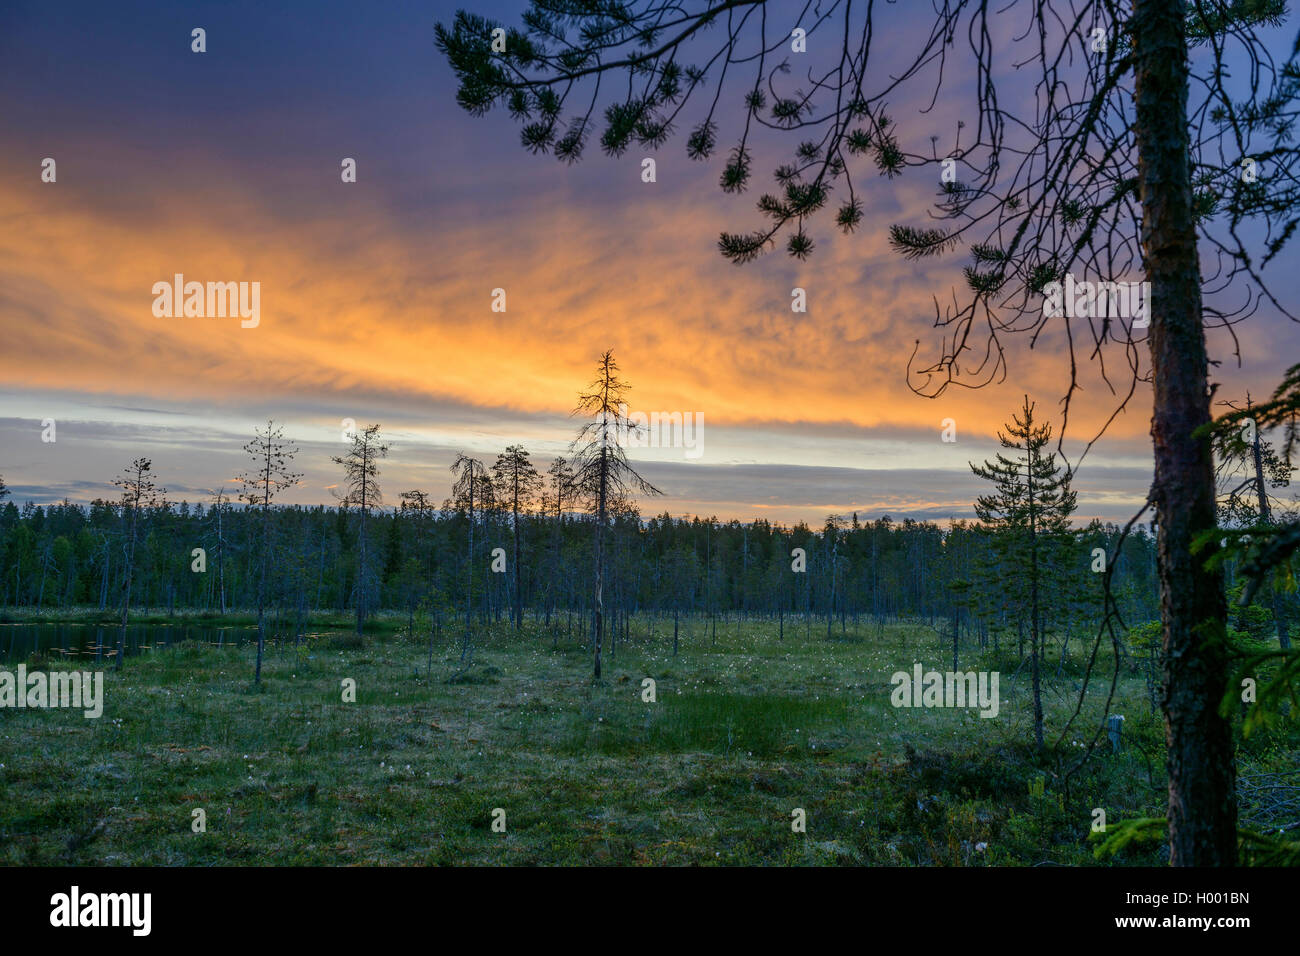 Moor in der finnischen Taiga vor Sonnenaufgang, Finnland, Taigawald | moorland in the Finnish taiga before sunrise, - Stock Image